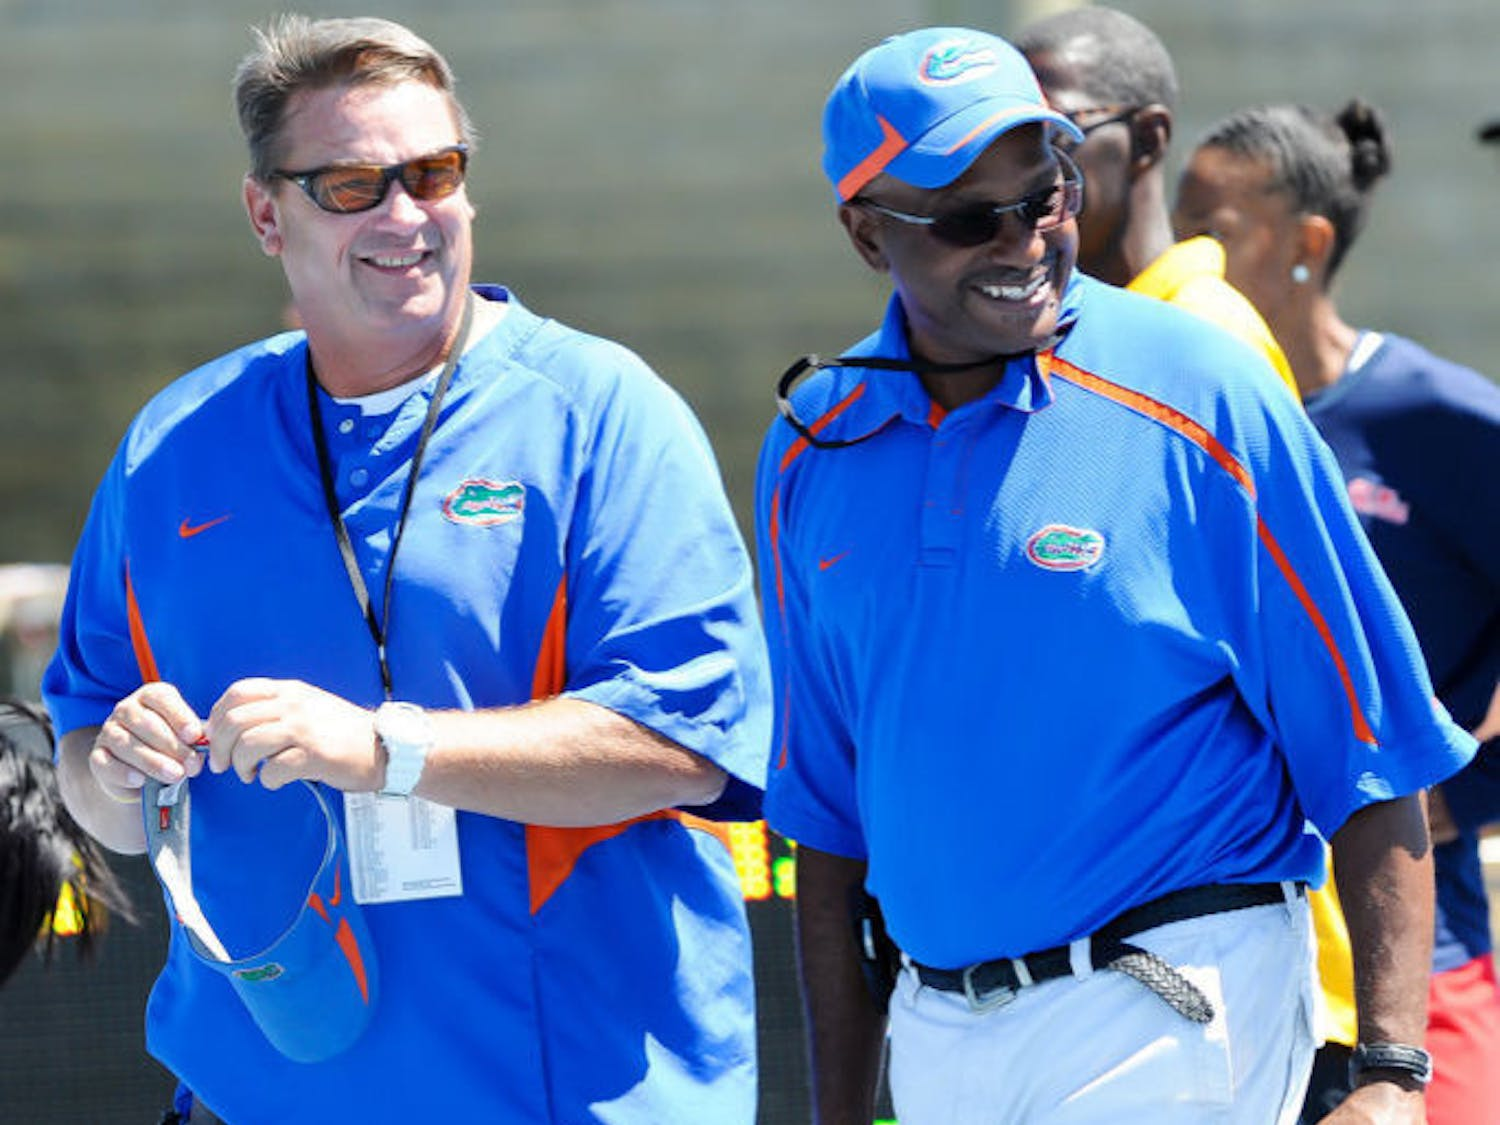 Throwers coach Steve Lemke (left) and coach Mike Holloway walk across the field at Percy Beard Track at Pressly Stadium during the 2012 Florida Relays. Seventeen Gators qualified Sunday for the NCAA Outdoor Championships, which are set to begin June 5.